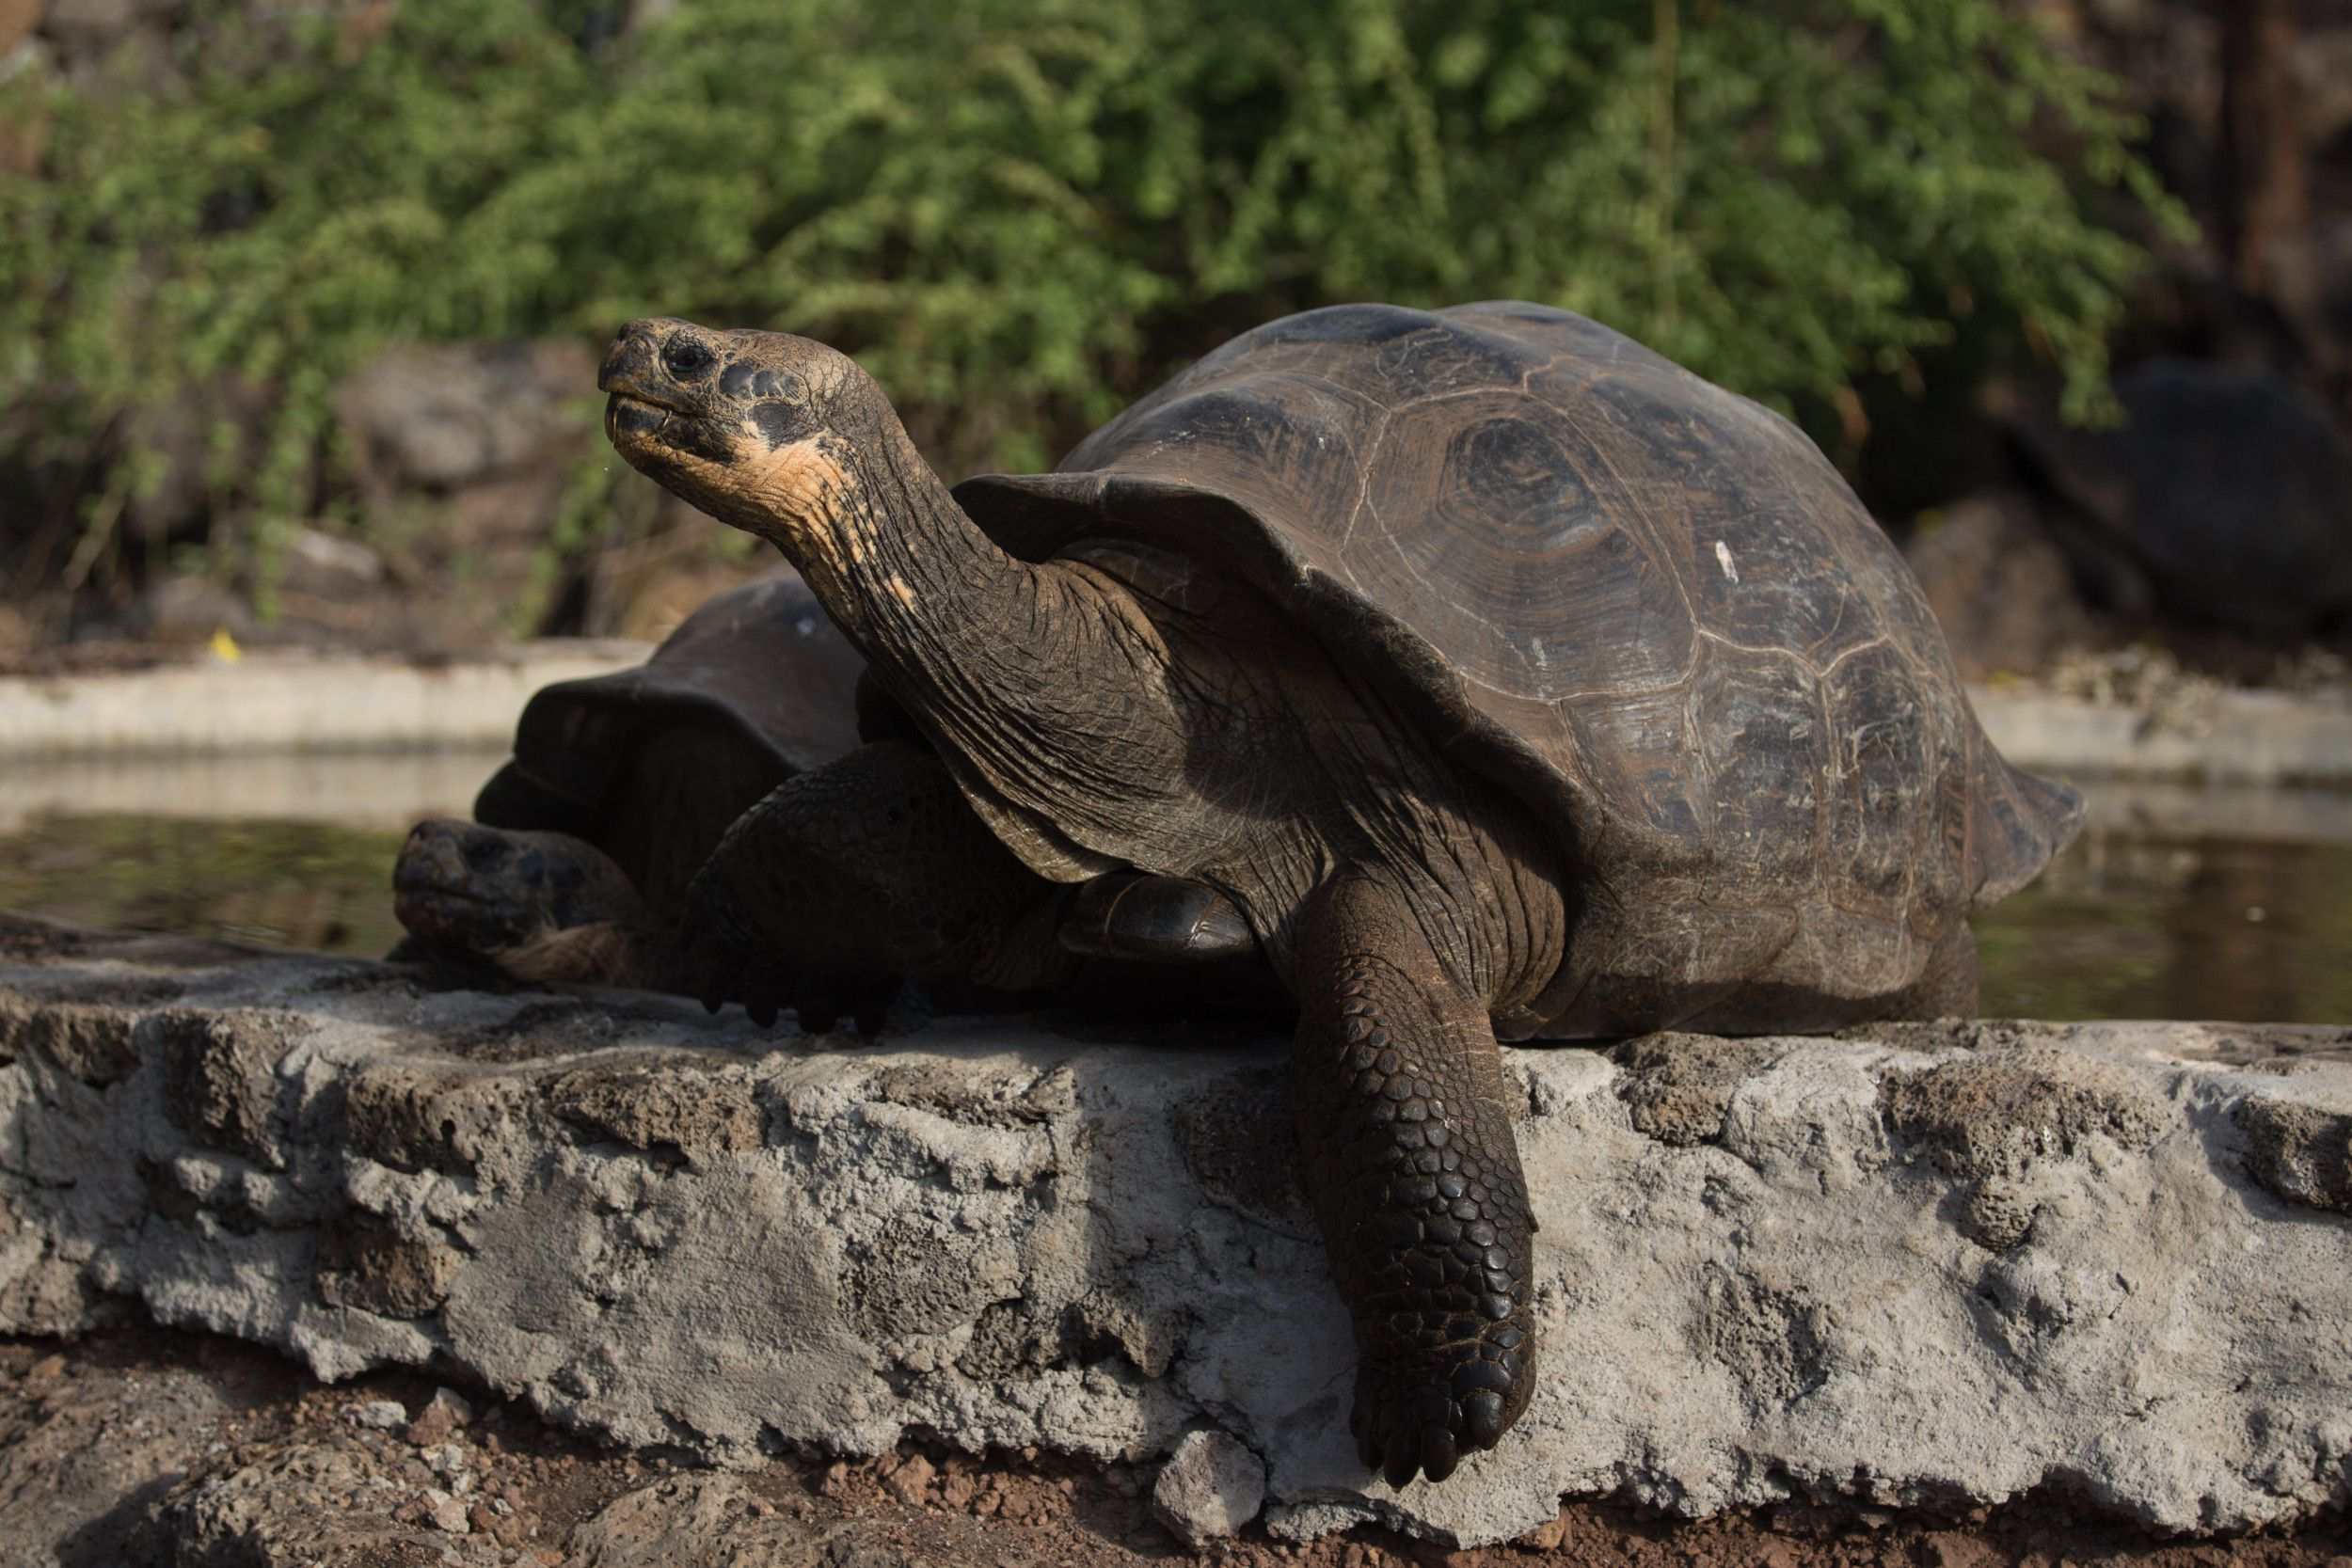 Diego, a 100yearold Galapagos giant tortoise who saved